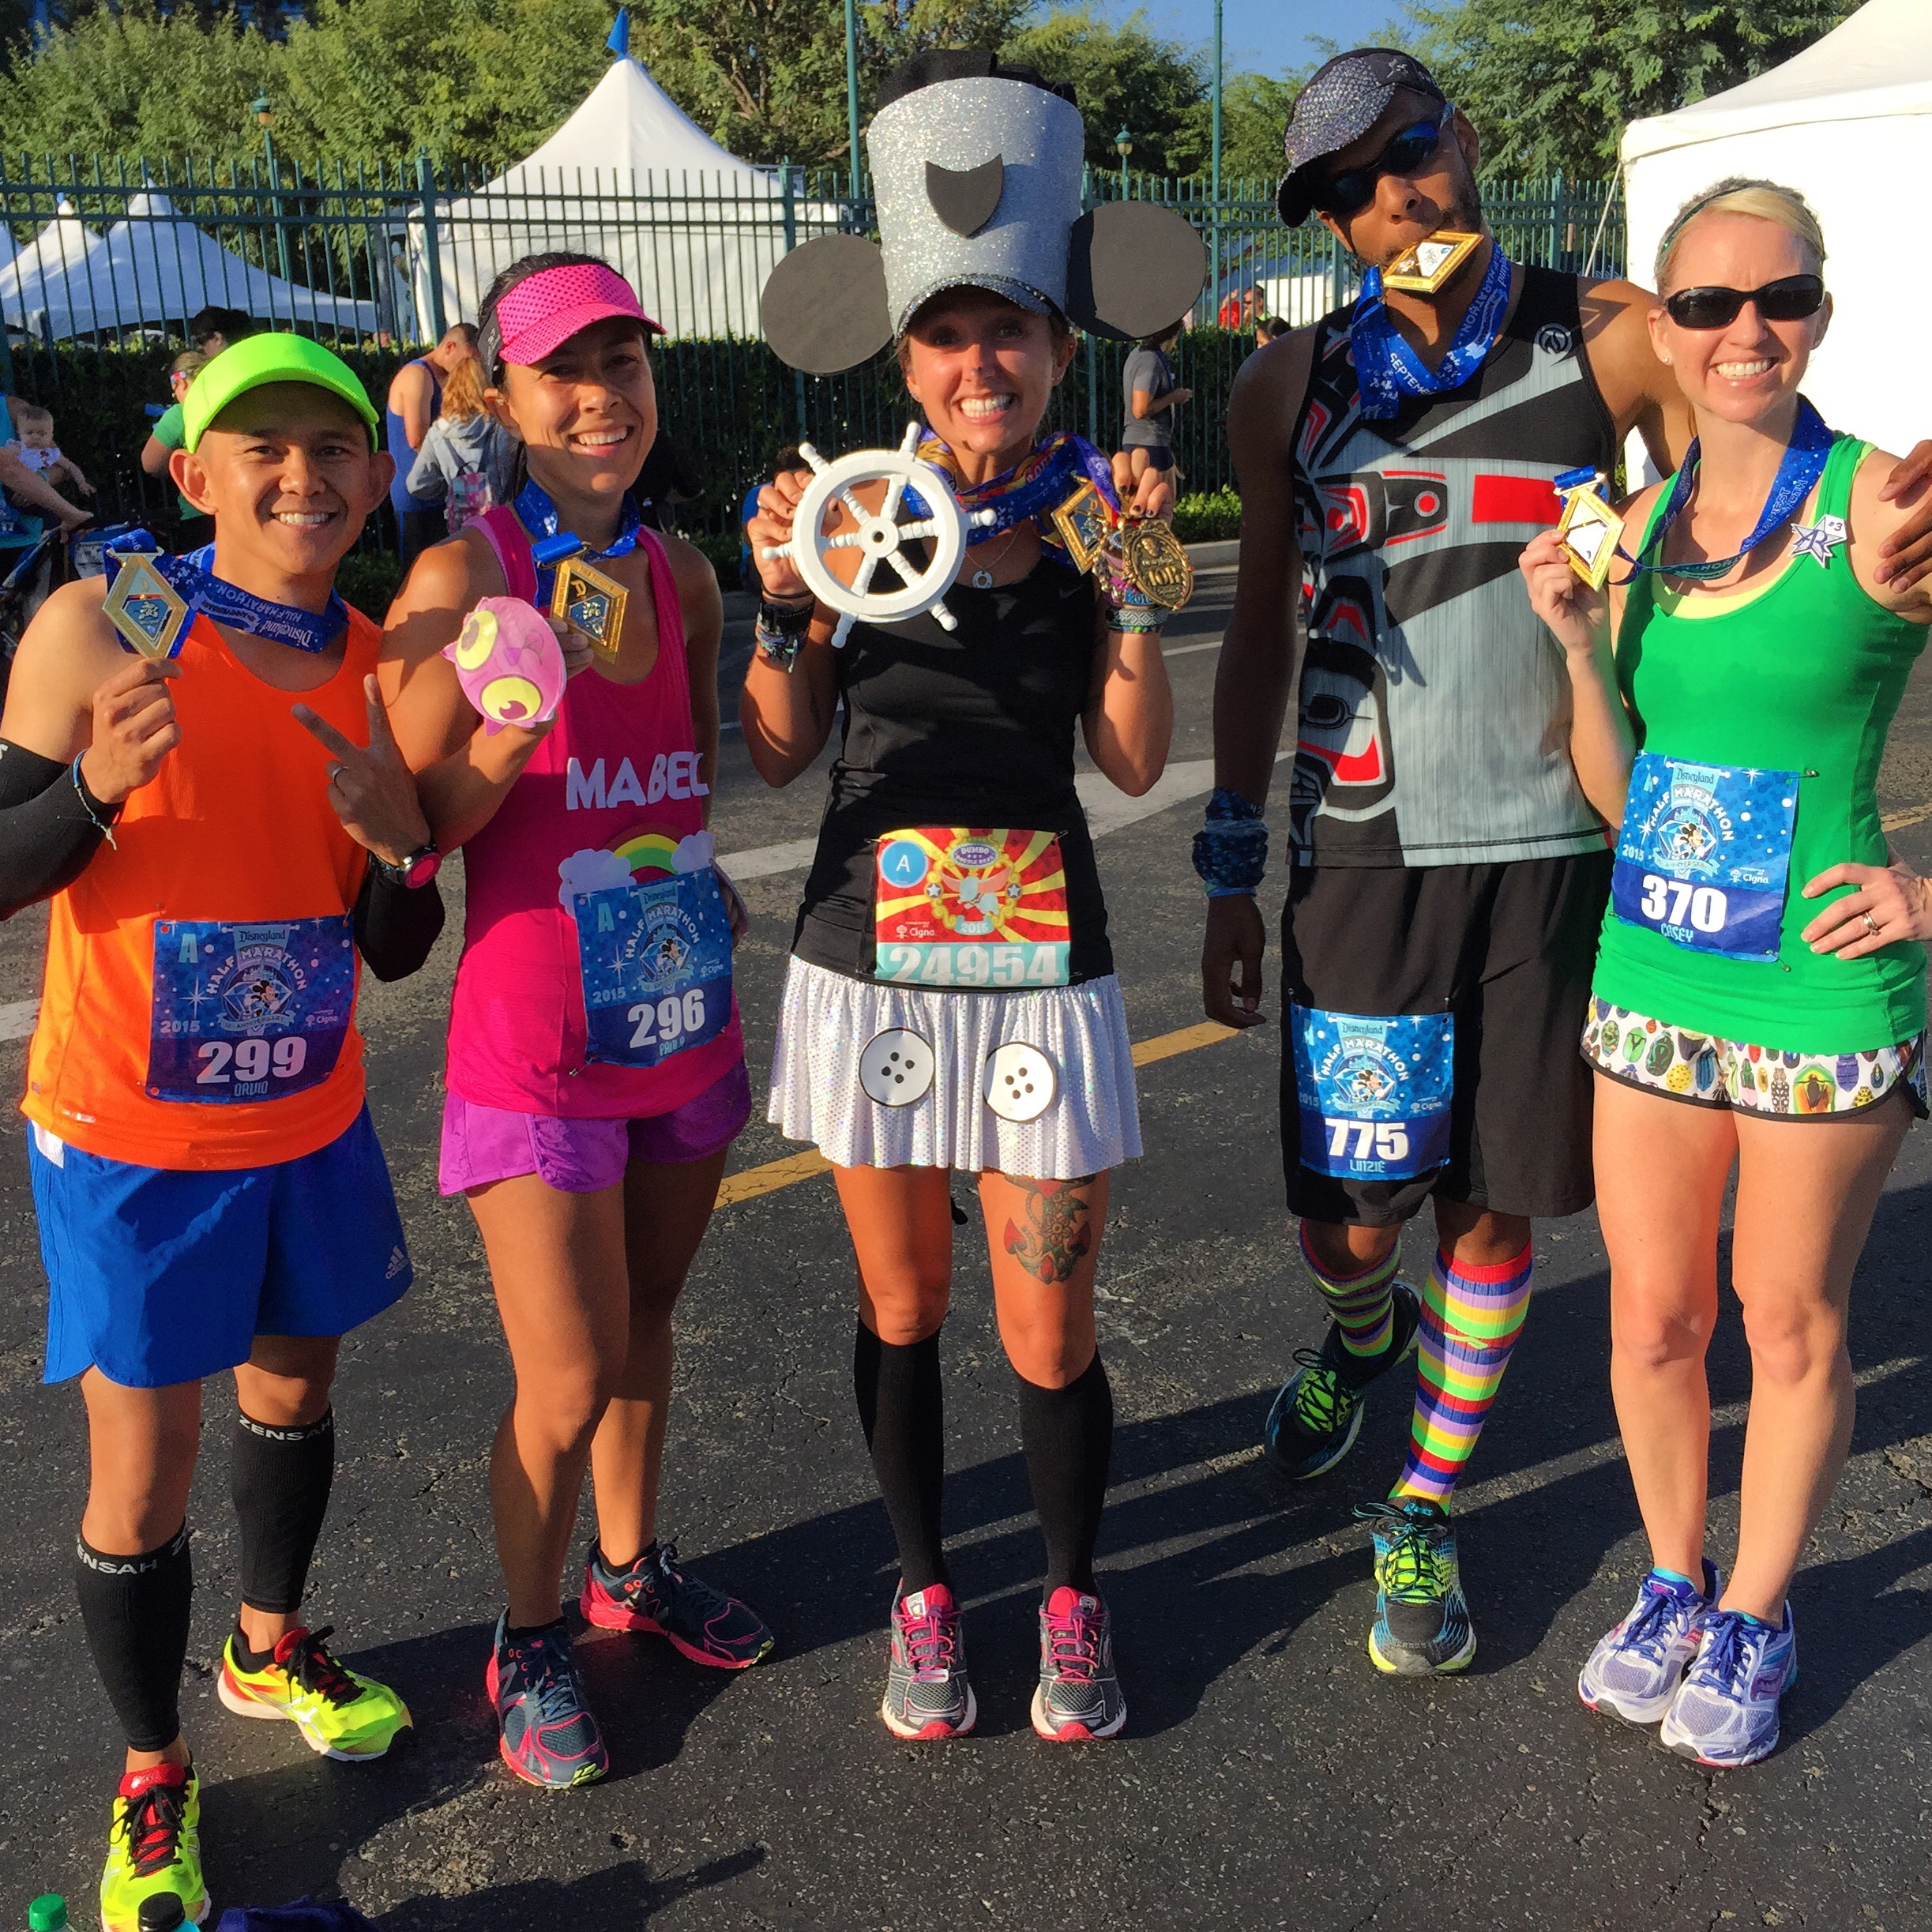 It's  @caseyruns  and some of the  @werunsocial  after killing it on the Disneyland Half Marathon course!